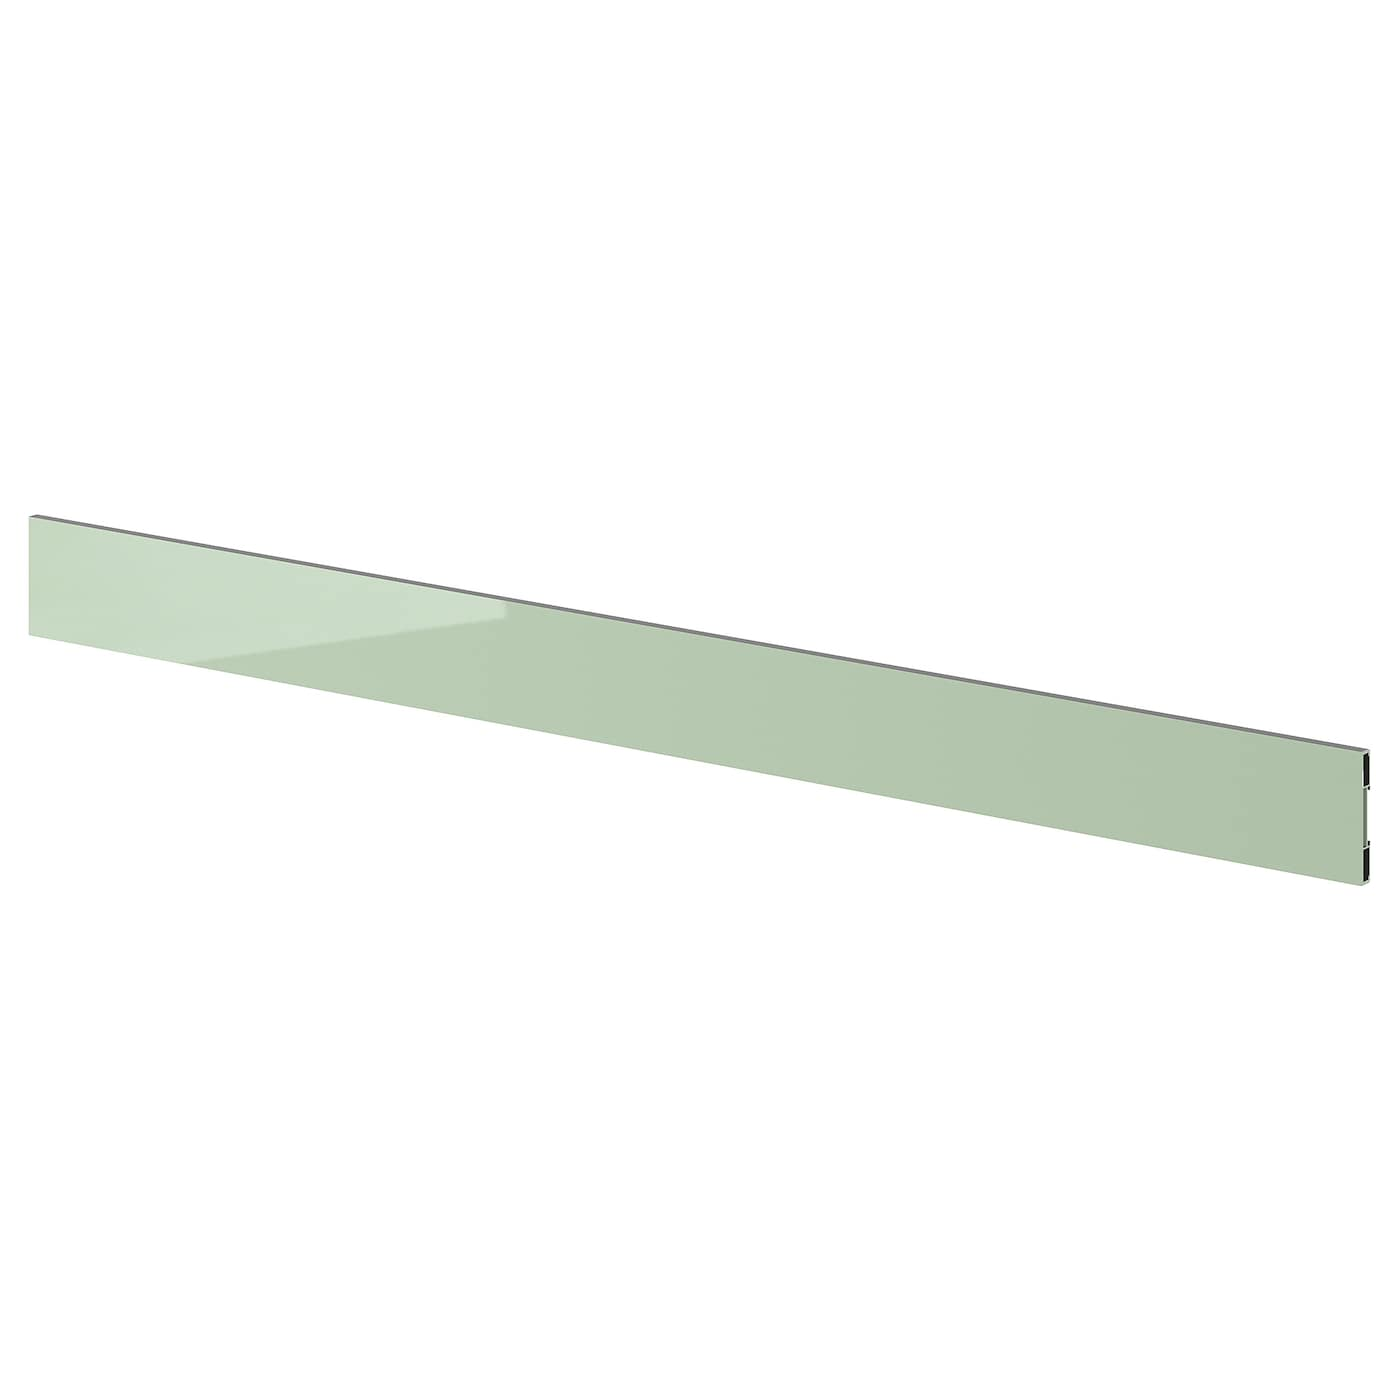 IKEA KALLARP plinth Covered with high-gloss foil; gives an easy care finish.